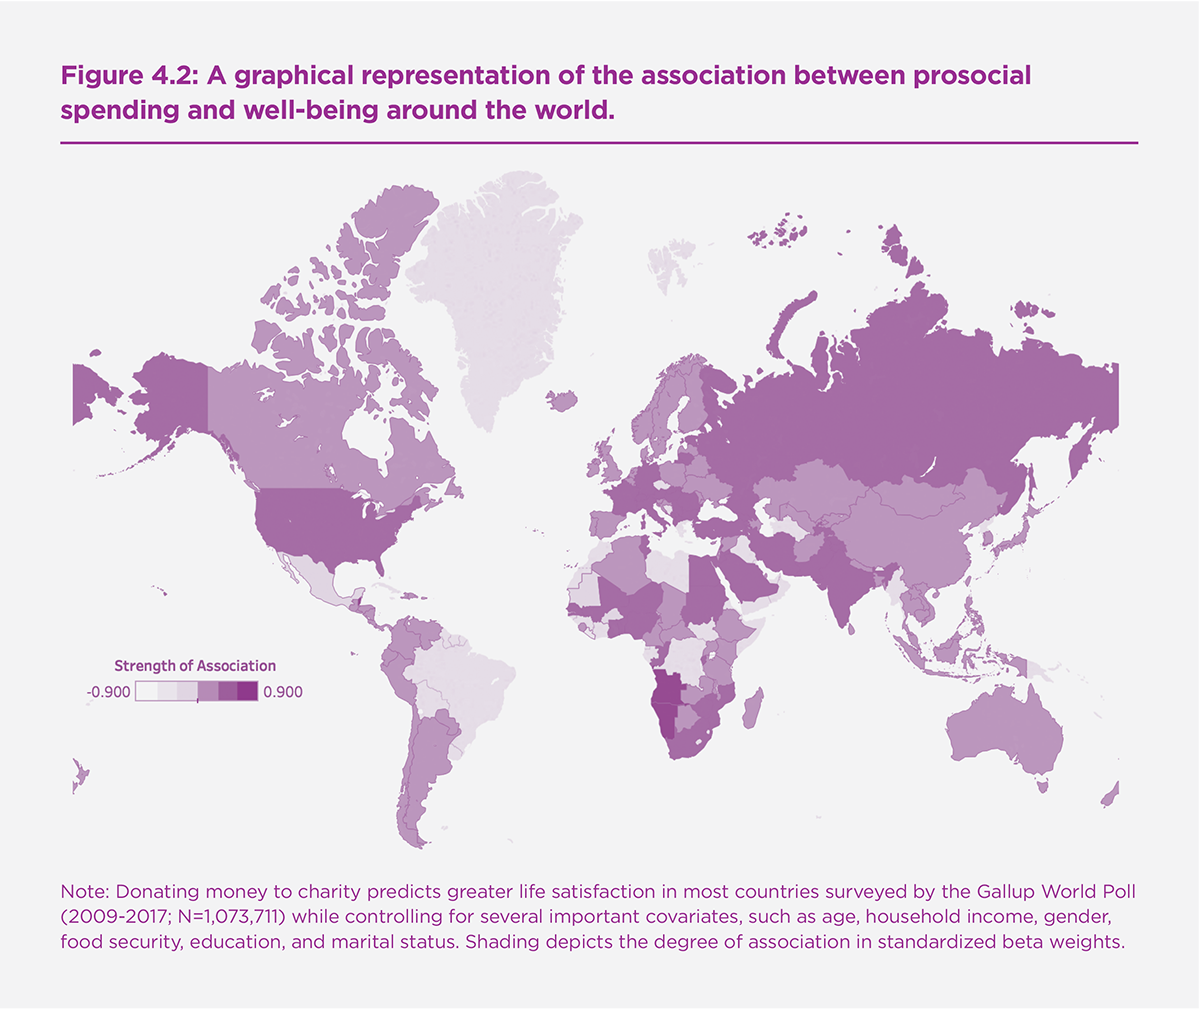 Figure 4.2. A graphical representation of the association between prosocial spending and well-being around the world.